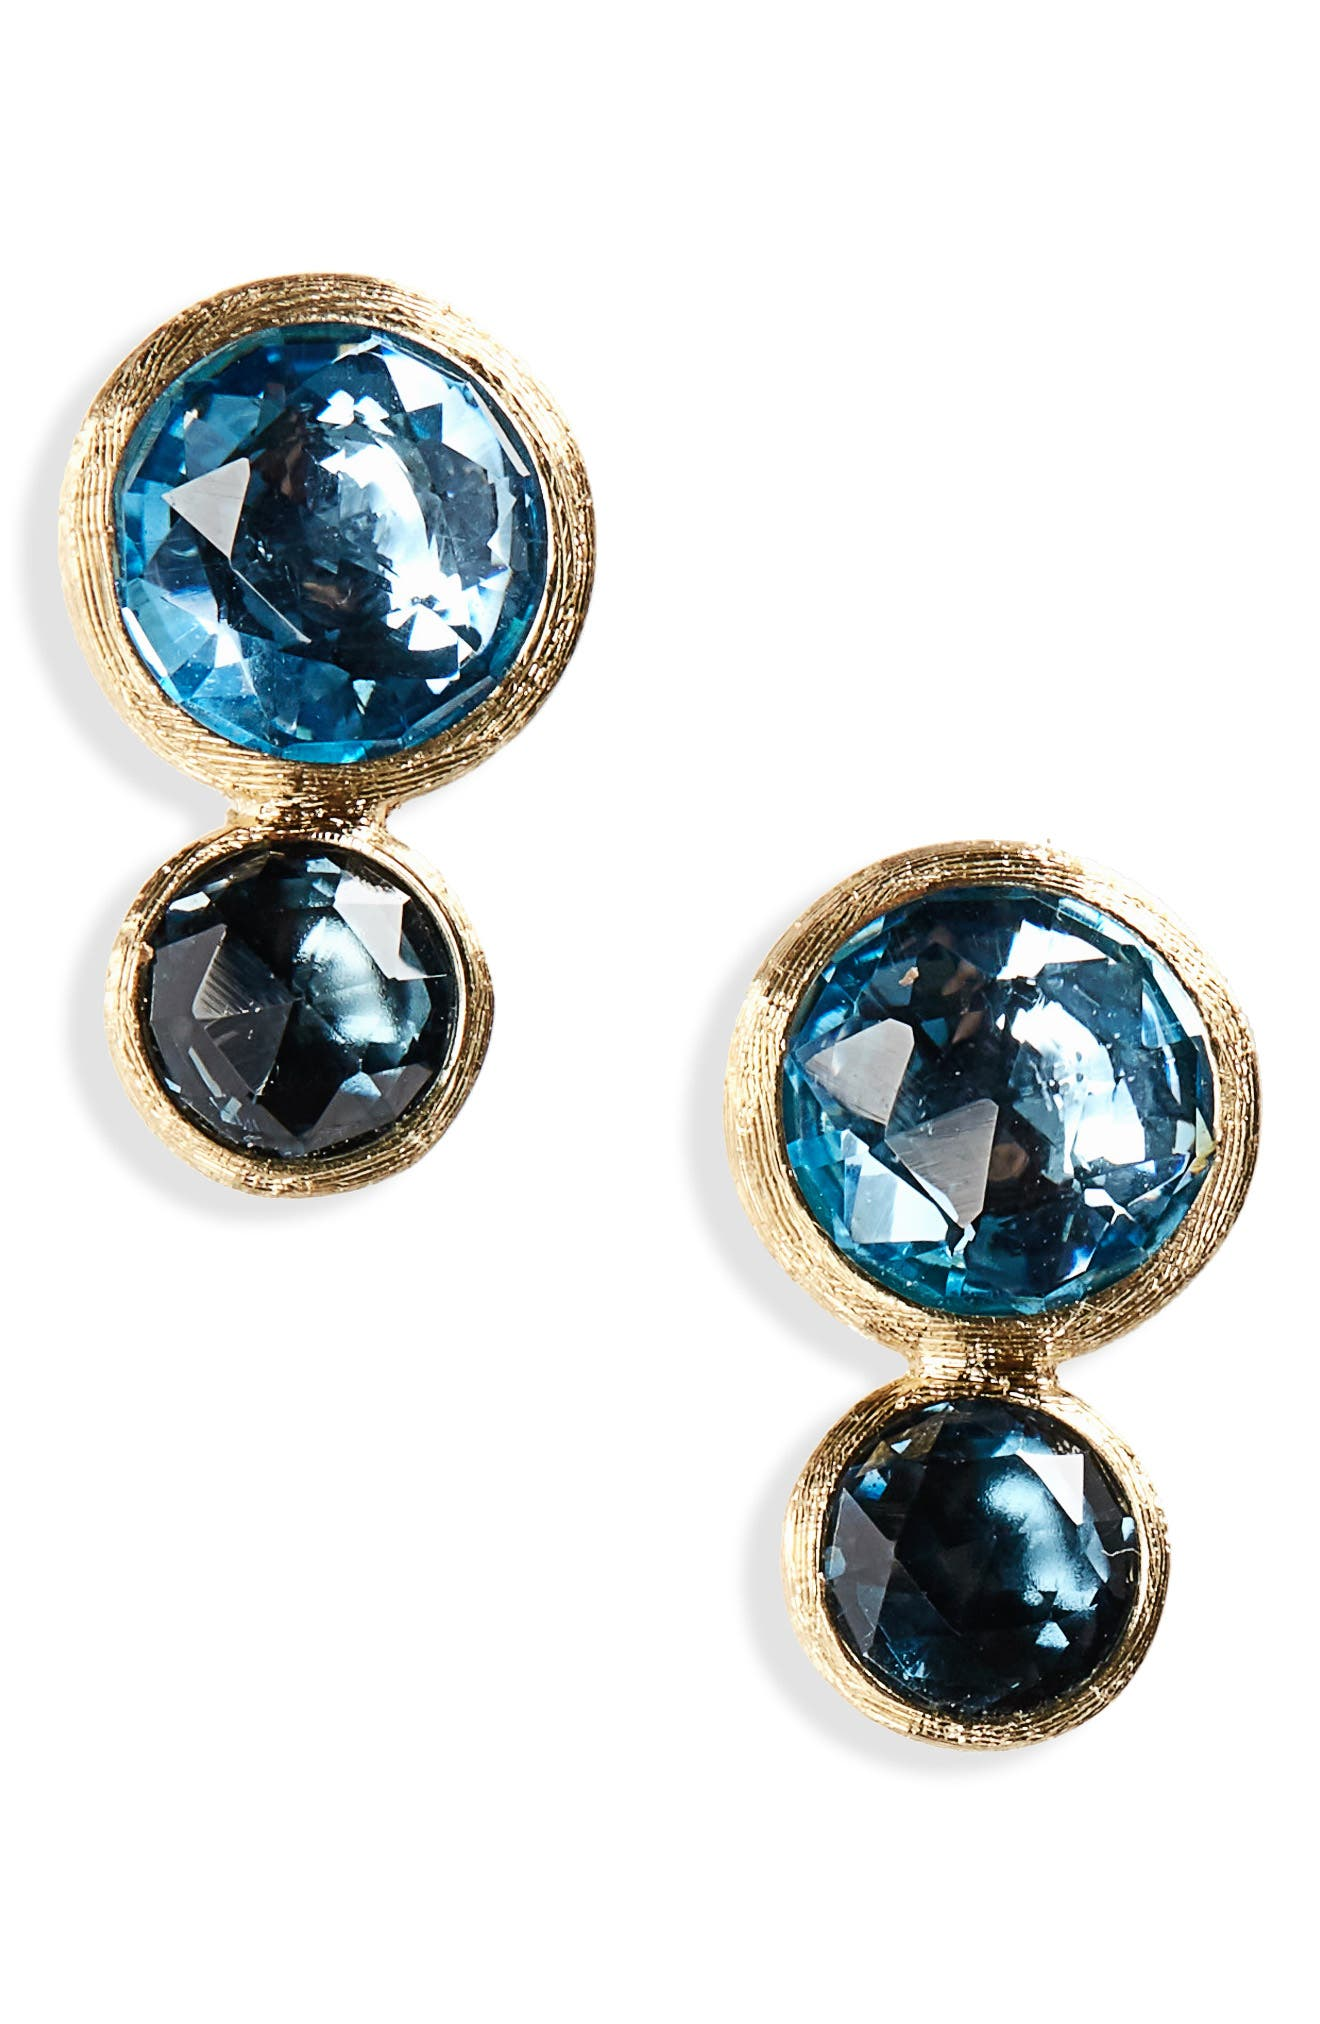 Jaipur 2-Stone Blue Topaz Stud Earrings,                         Main,                         color, Yellow Gold London/ Swiss Blue